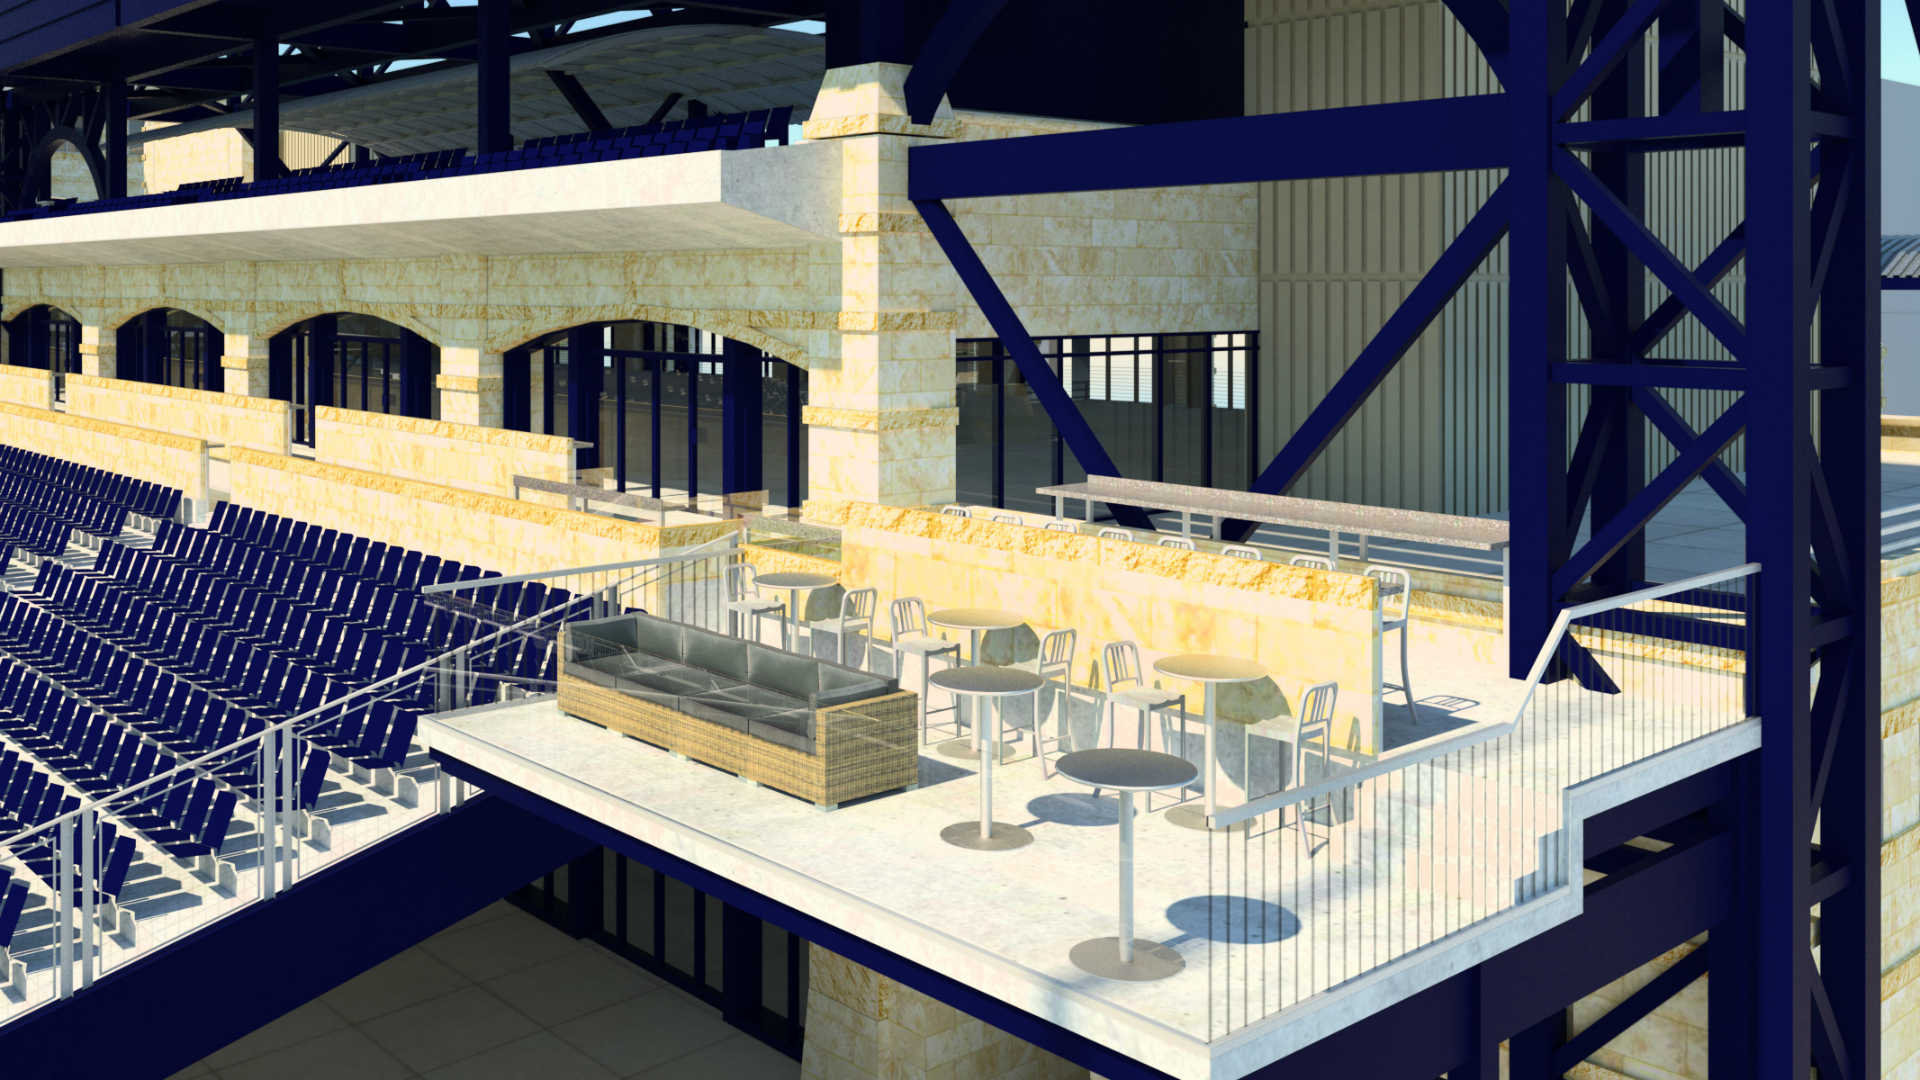 club-terraces-pnc-park-rendering-ftr.jpg